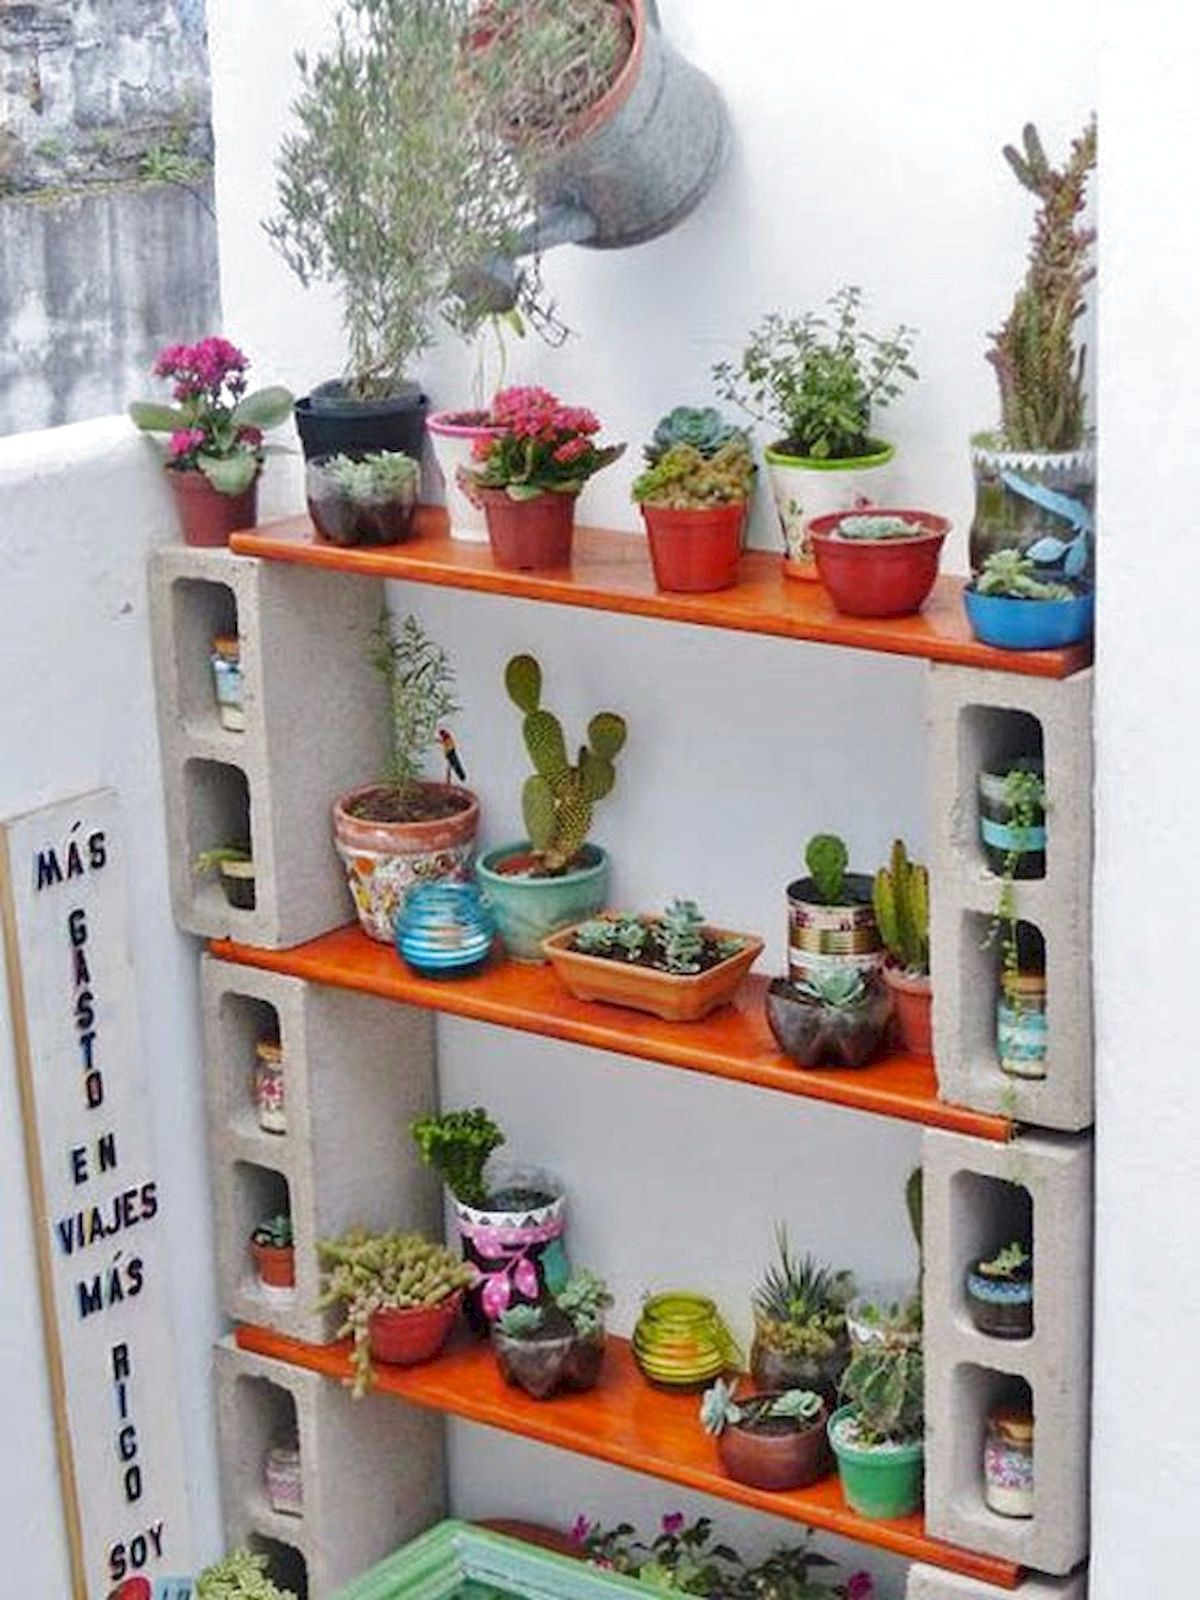 40 Favourite Indoor Garden For Apartment Design Ideas And Remodel Home Garden Cinder Block Shelves Diy Plant Stand Diy Terra Cotta Pots